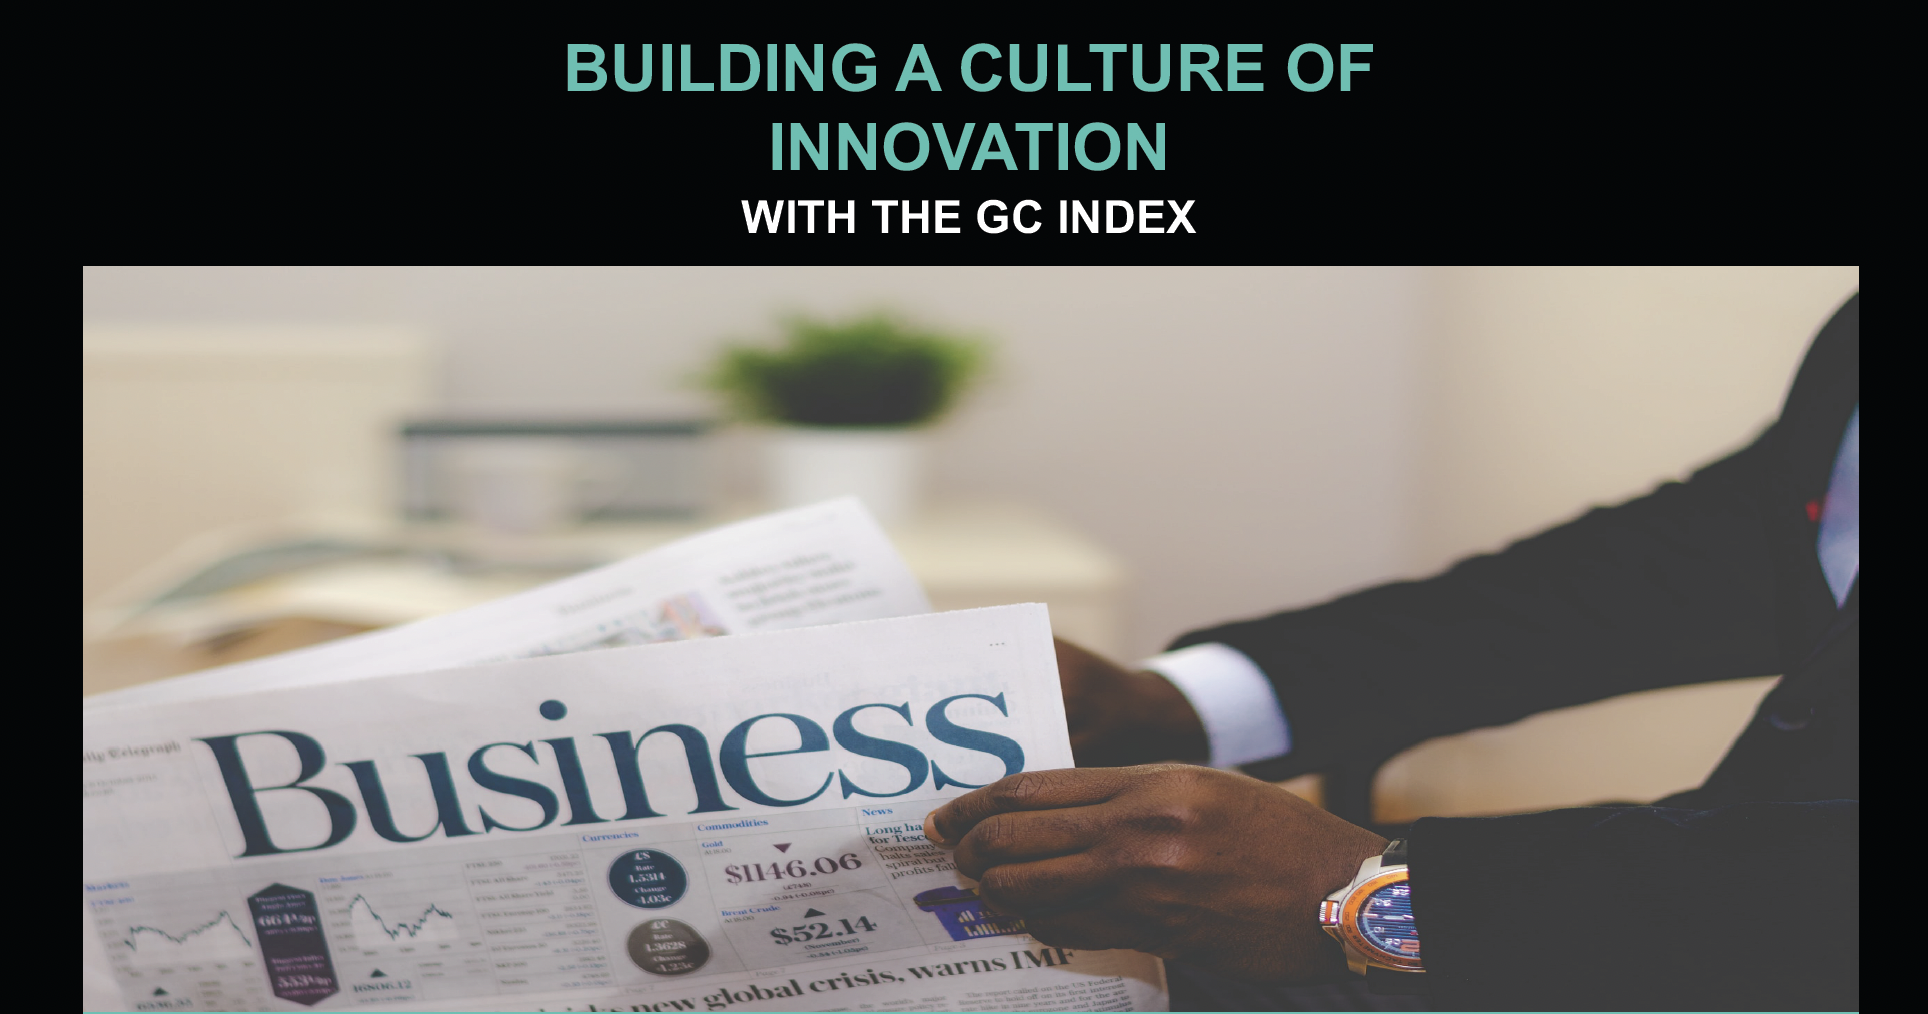 How UniCredit are building a culture of innovation with The GC Index